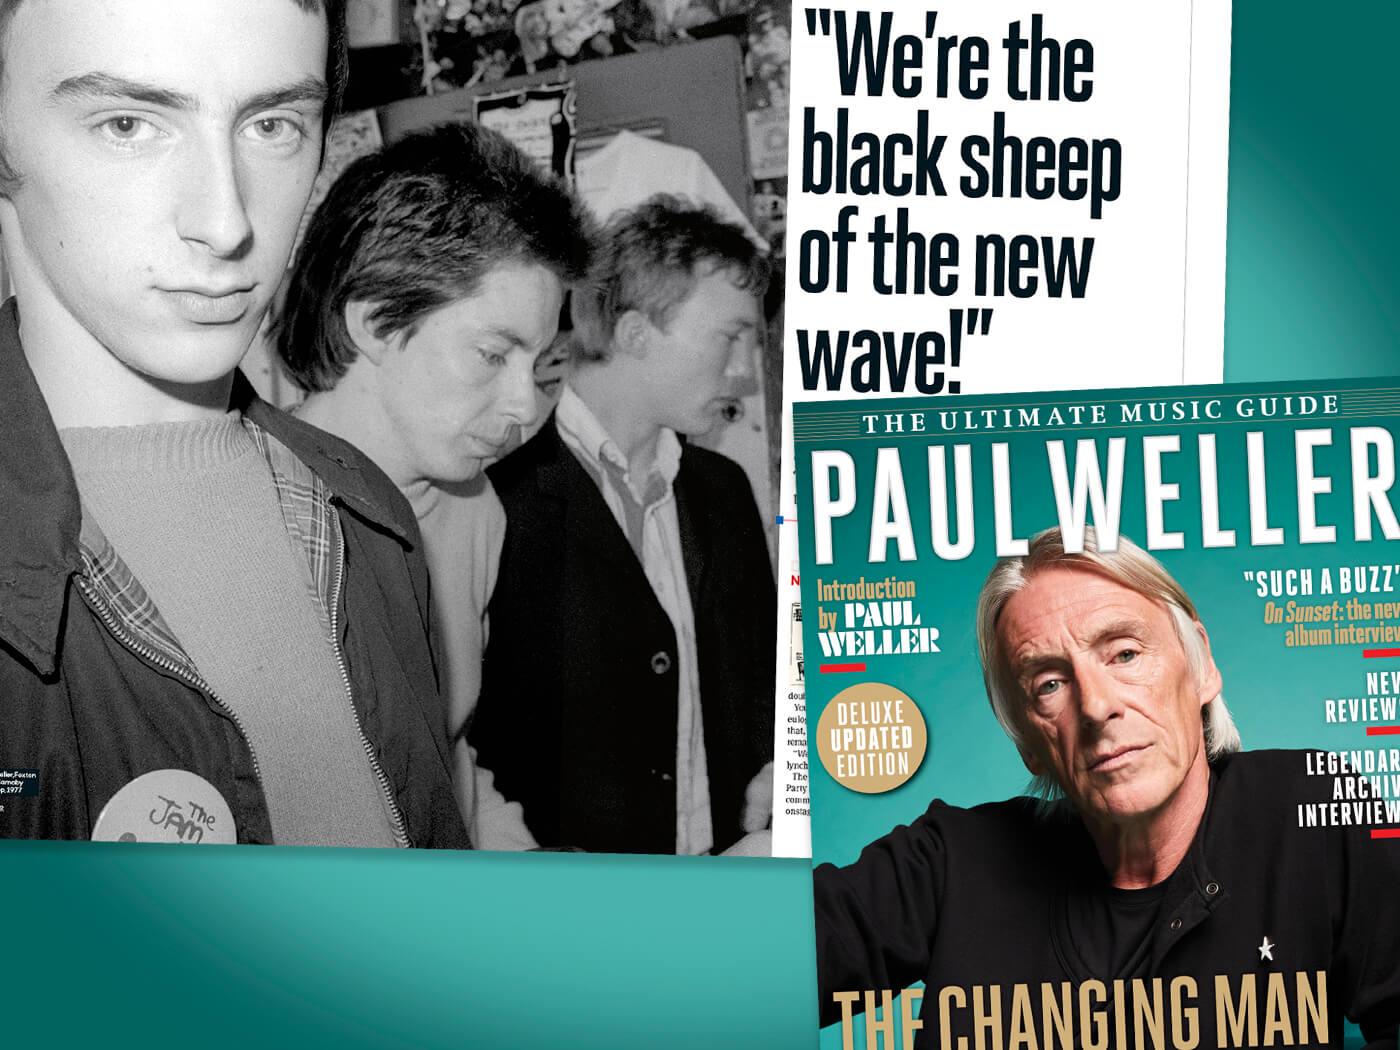 Introducing the Deluxe Ultimate Music Guide to Paul Weller